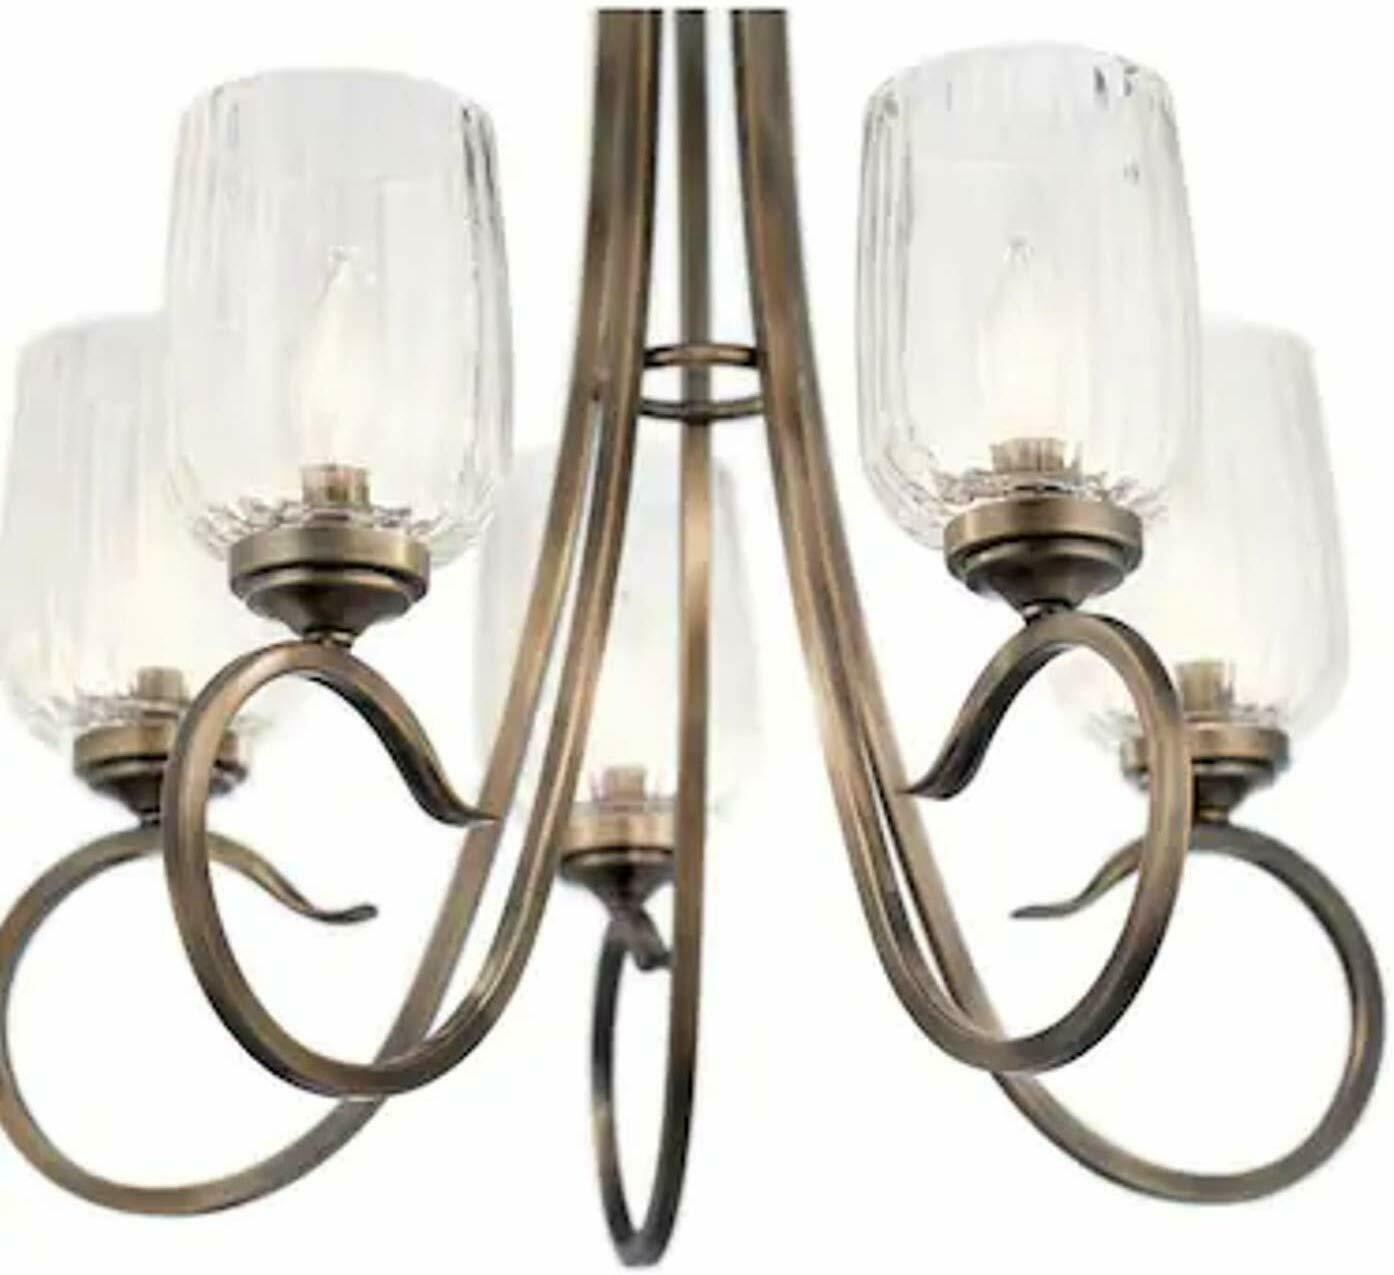 Primary image for Kichler Chesterlyn 5 Light Vintage Tuscan Traditional Ribbed Shaded Chandelier